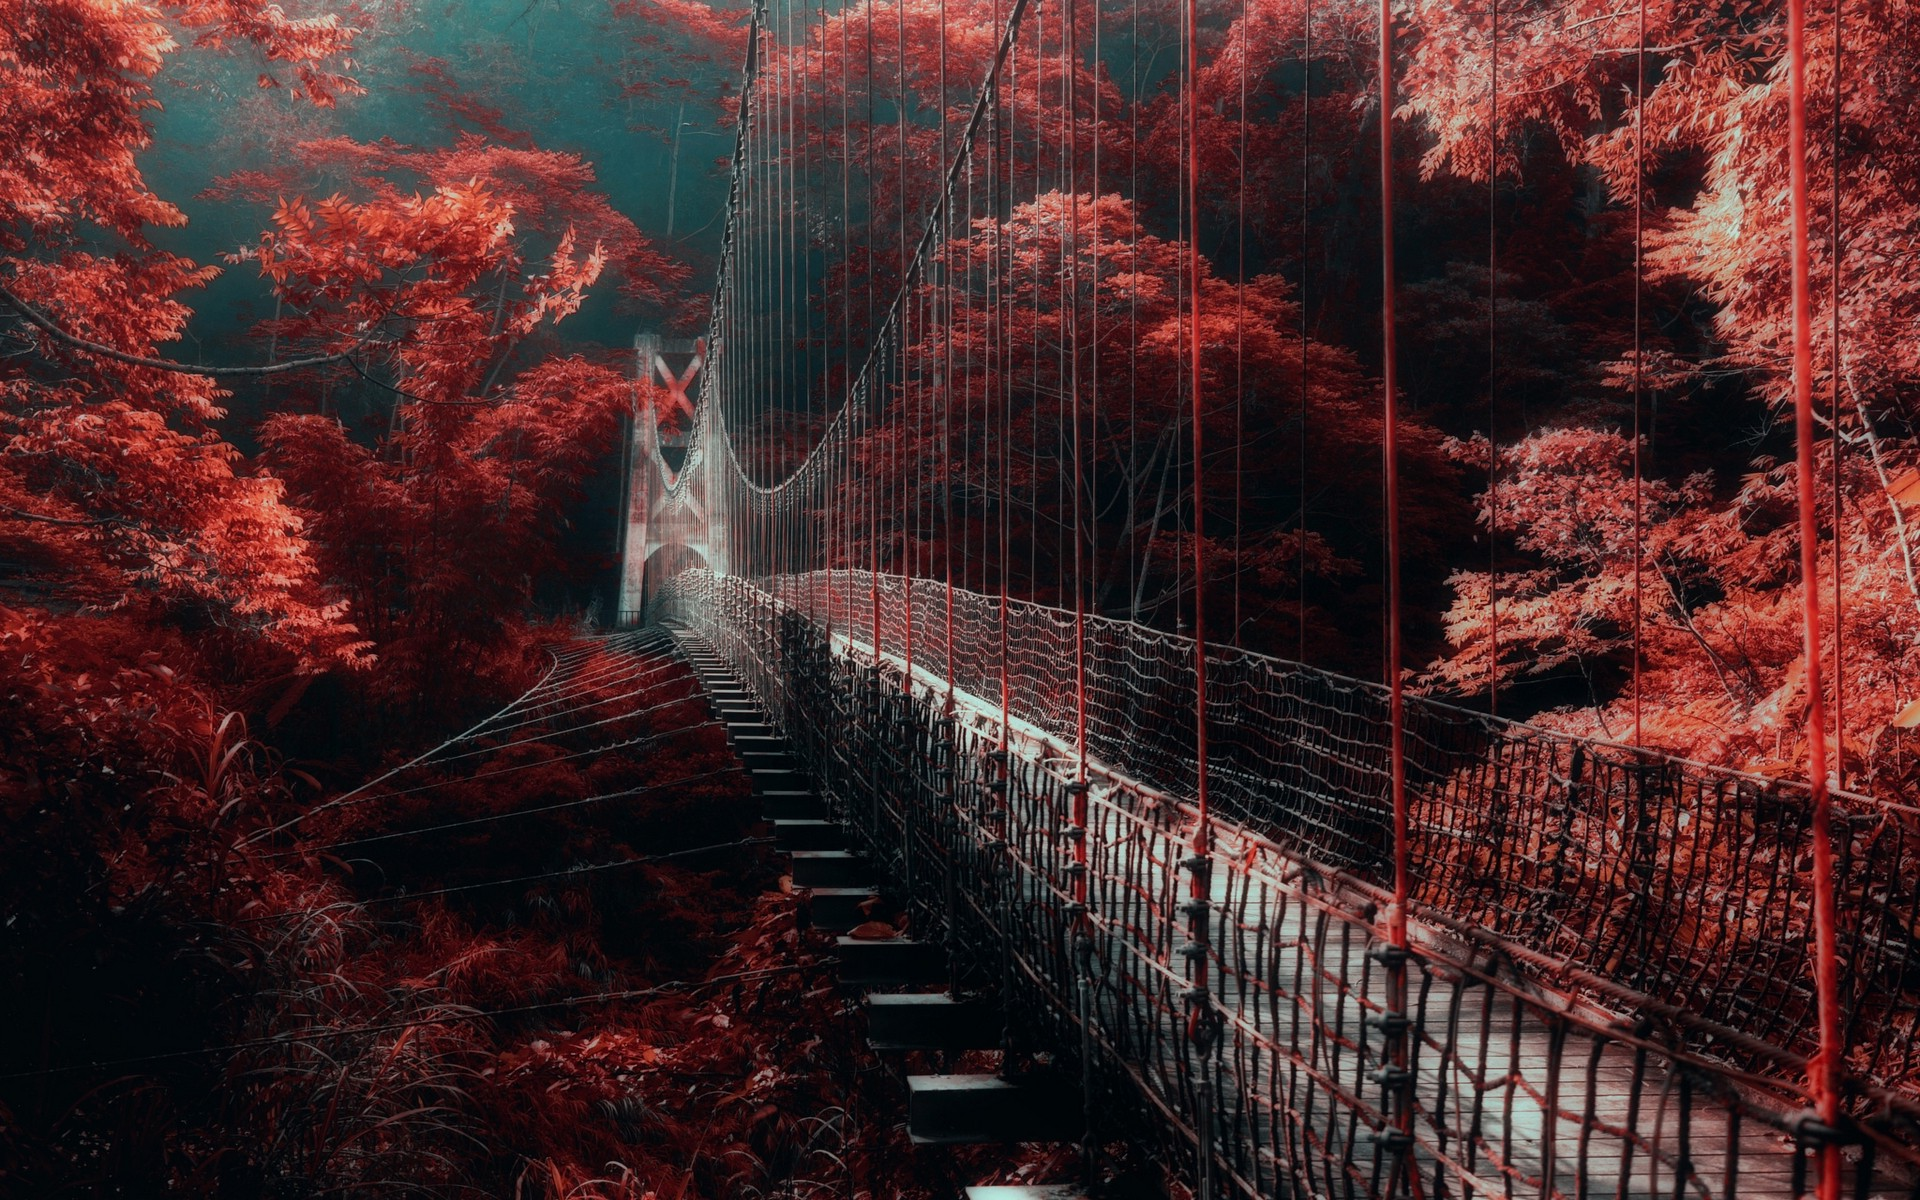 Dark Fall Wallpaper Nature Landscape Red Forest Bridge Mist Trees